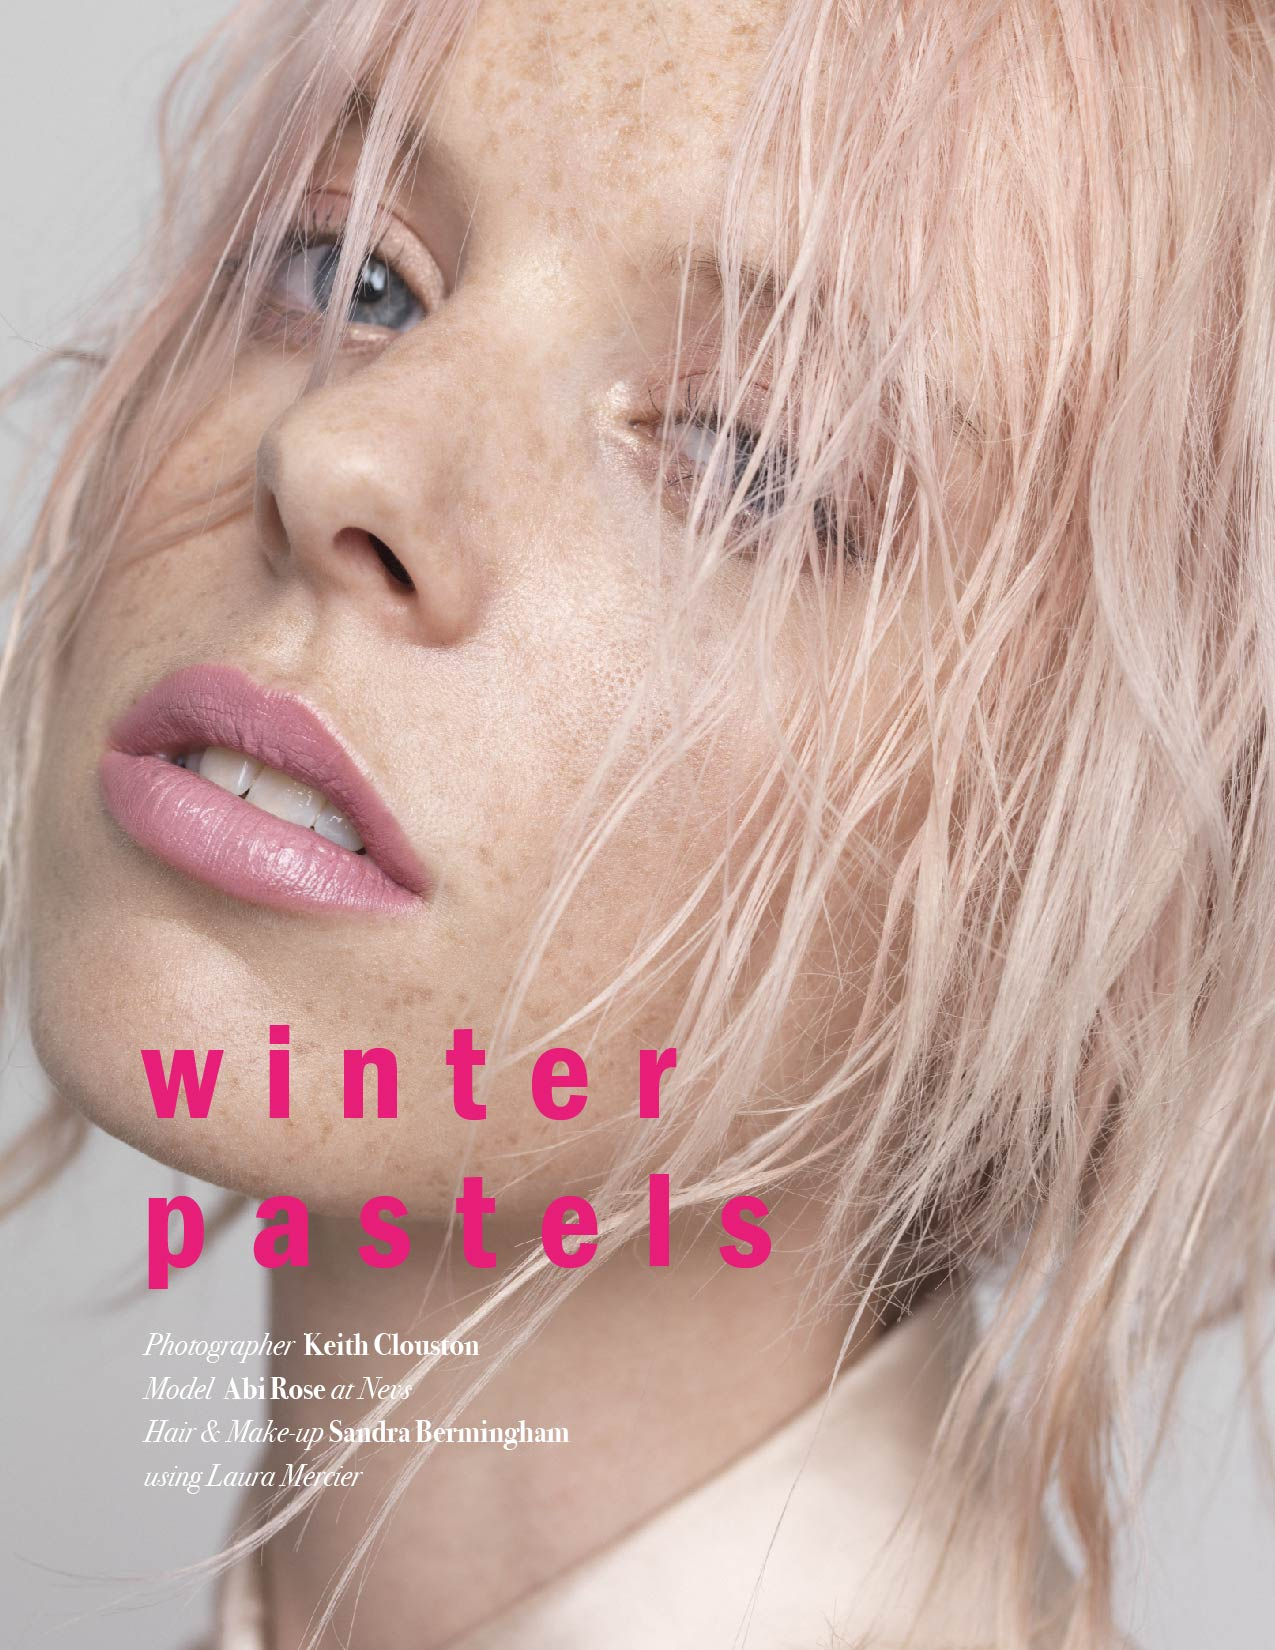 Abi Rose at Nevs stars in a new beauty story shot by photographer Keith Clouston for L'Beaut #2. With hairstyles & makeup looks by Sandra Bermingham using ... - Winter-Pastels-by-Keith-Clouston-for-LBeaut-2-1